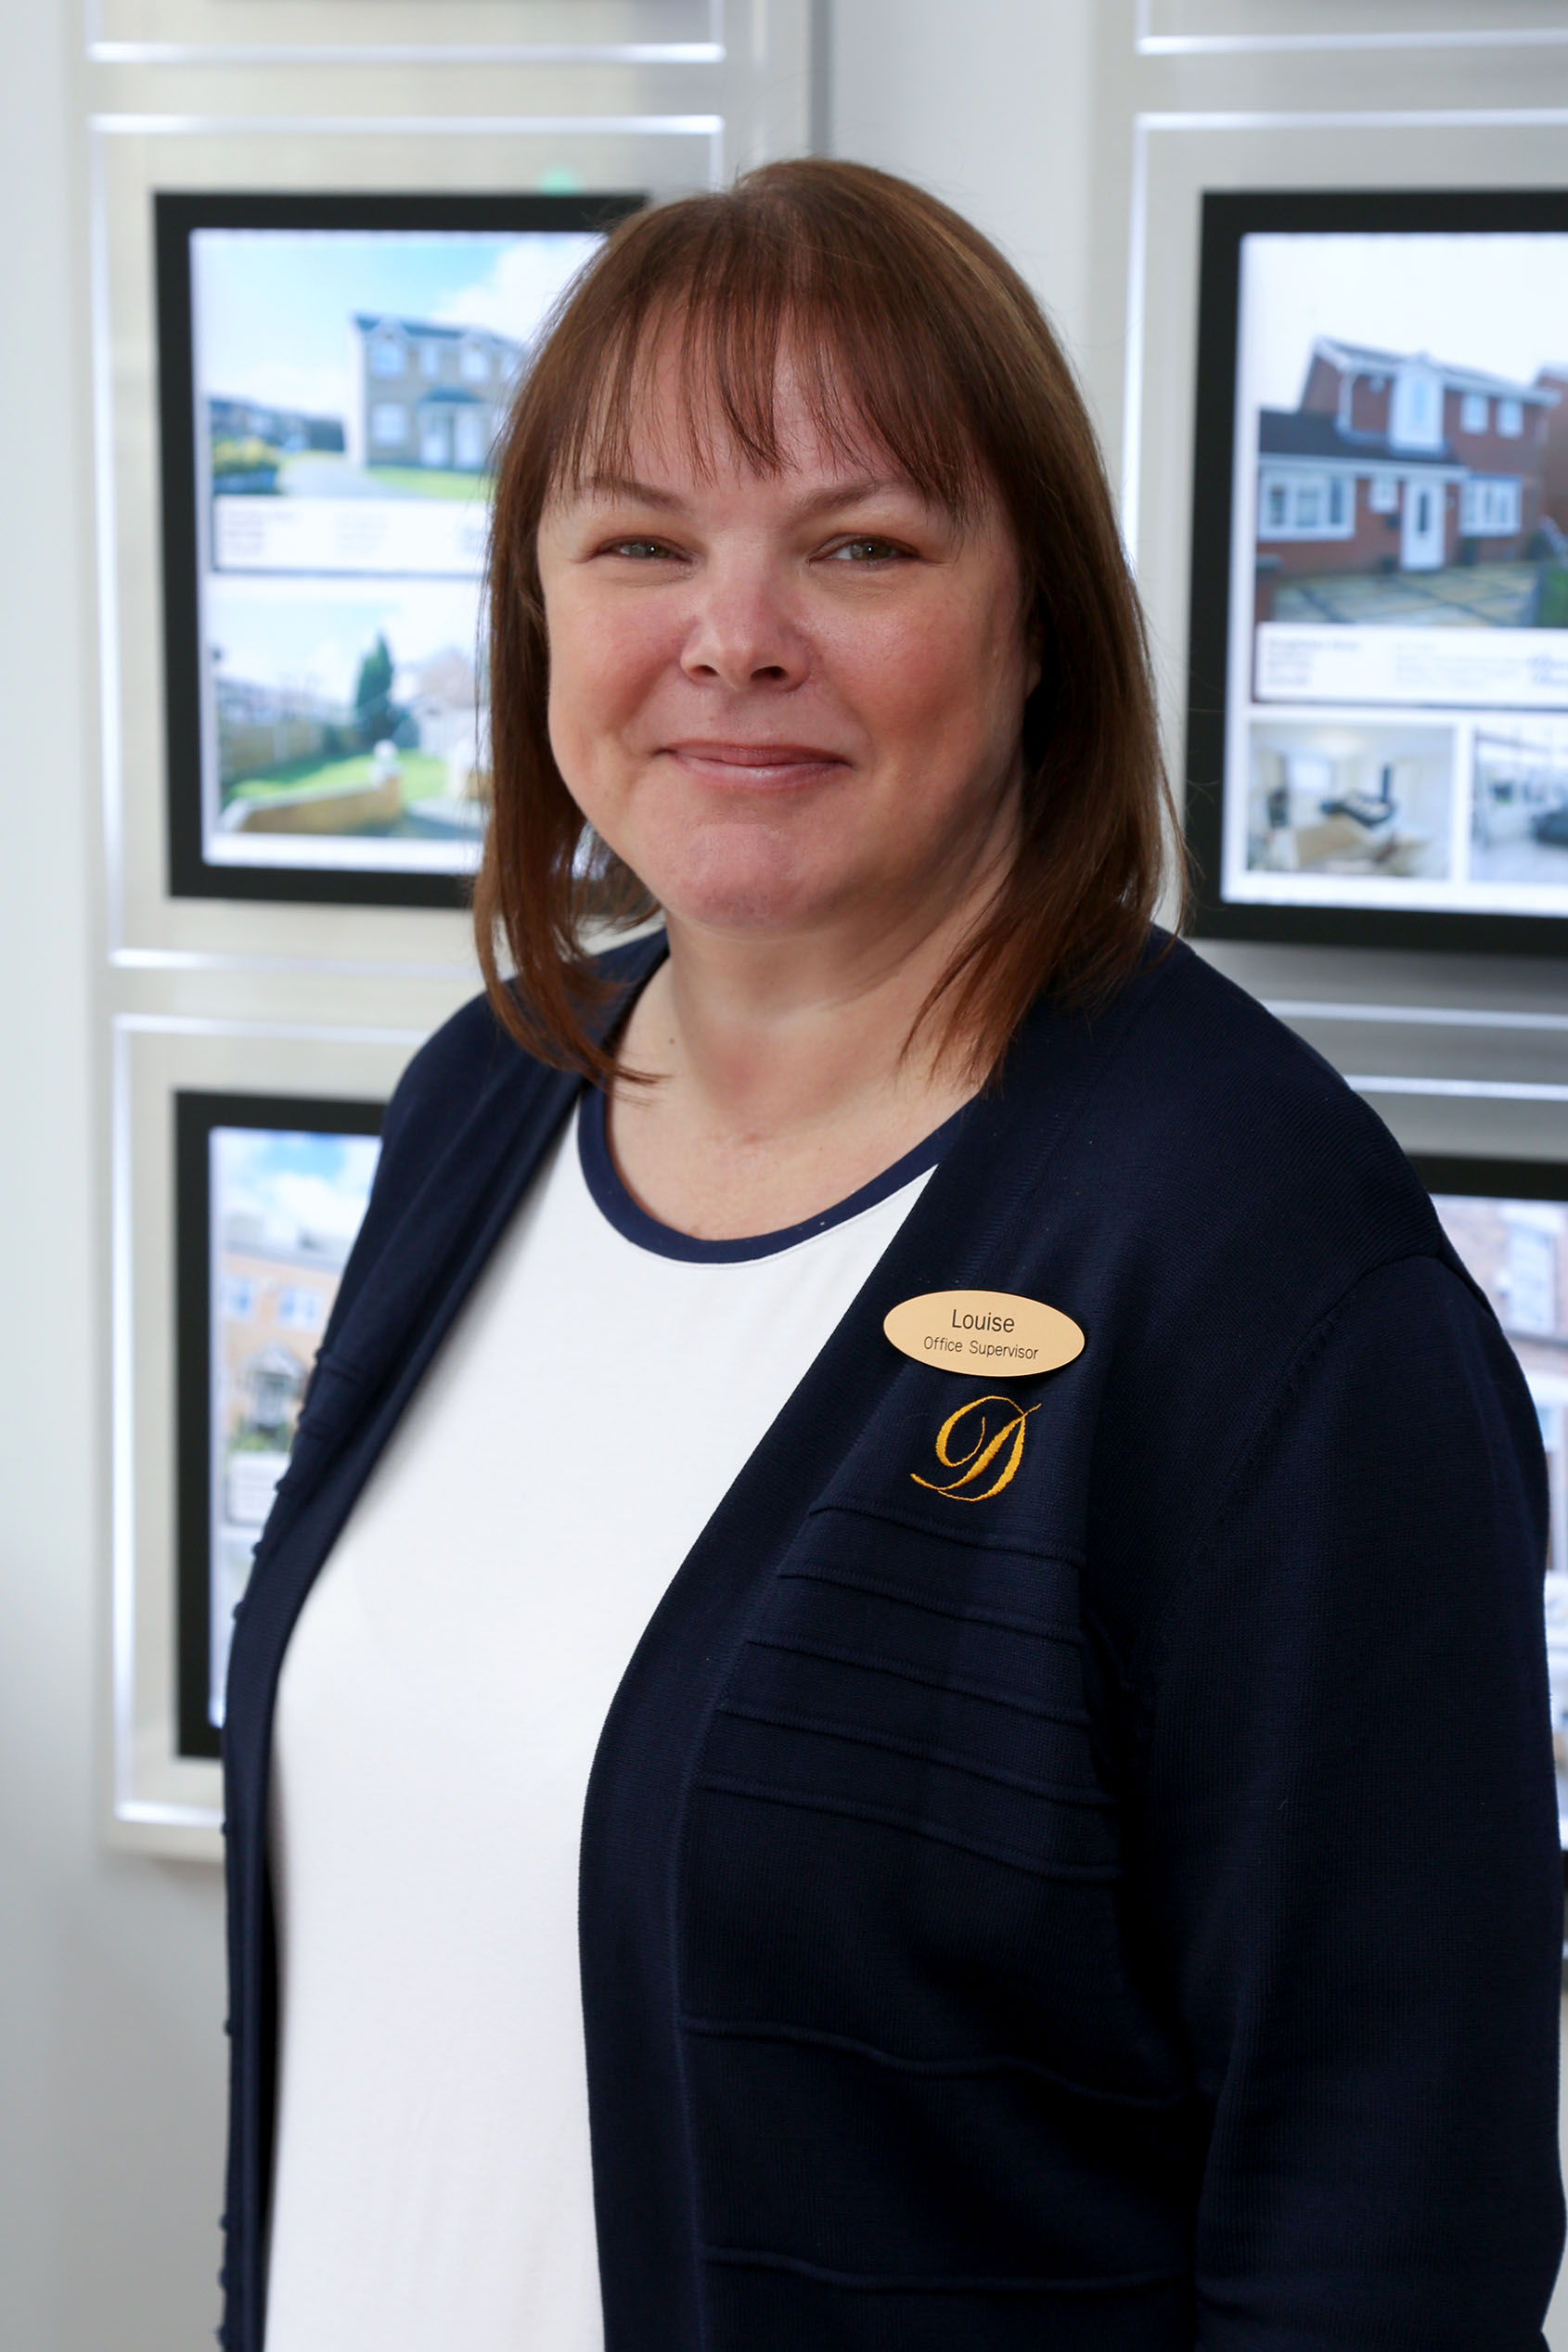 Louise Smith<br>AGPP